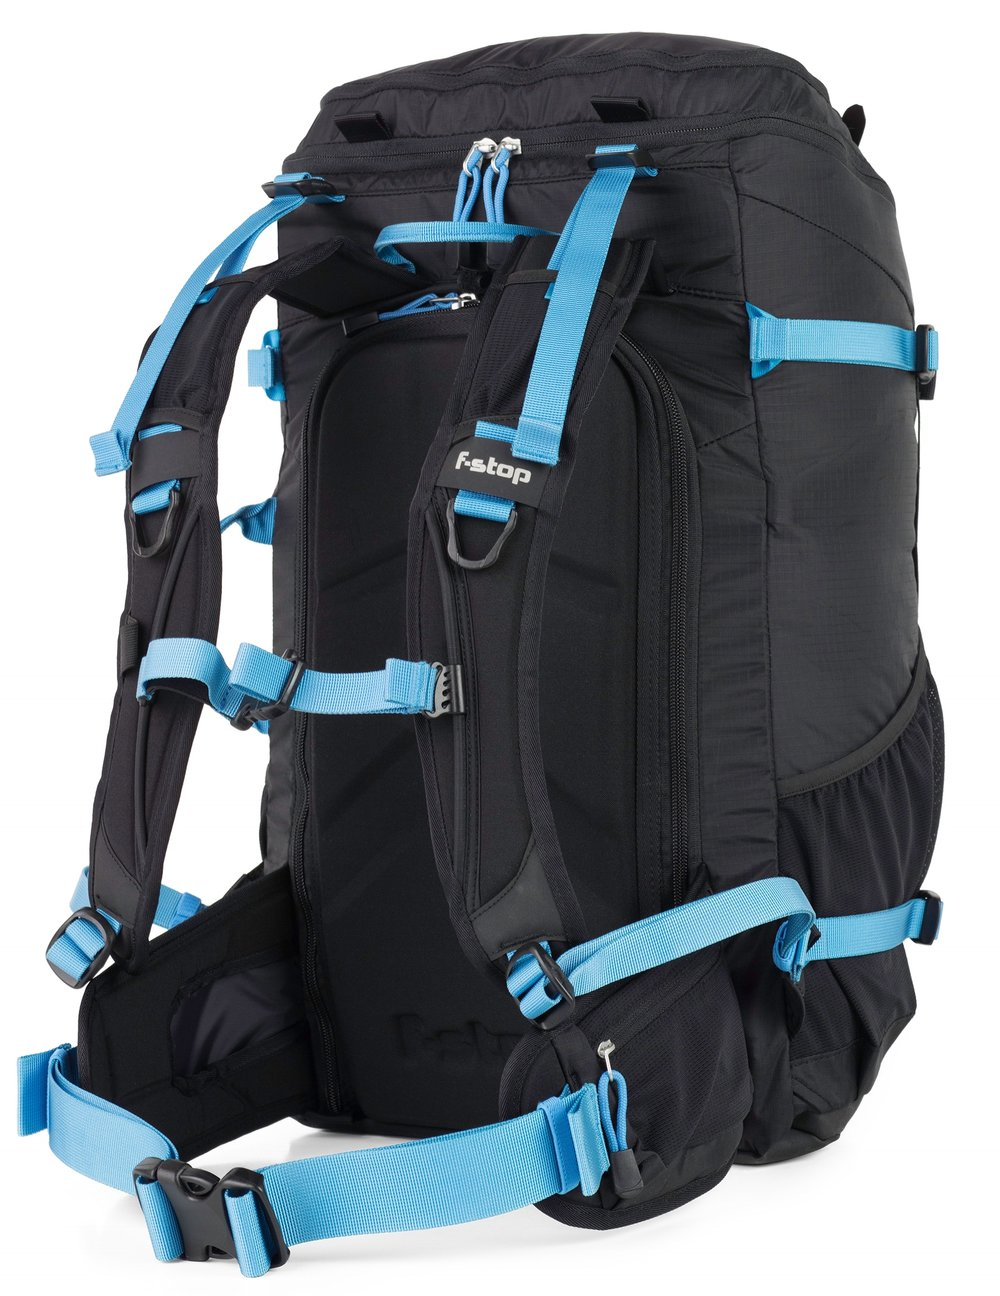 Allie prefers an F-Stop Kashmir, because it's designed specifically for a woman's shorter torso, distributing the weight more ergonomically on her hips. A men's backpack puts too much of the weight on her shoulders, leading to fatigue. There are very few camera bags for women out there with thoughtful design like this!